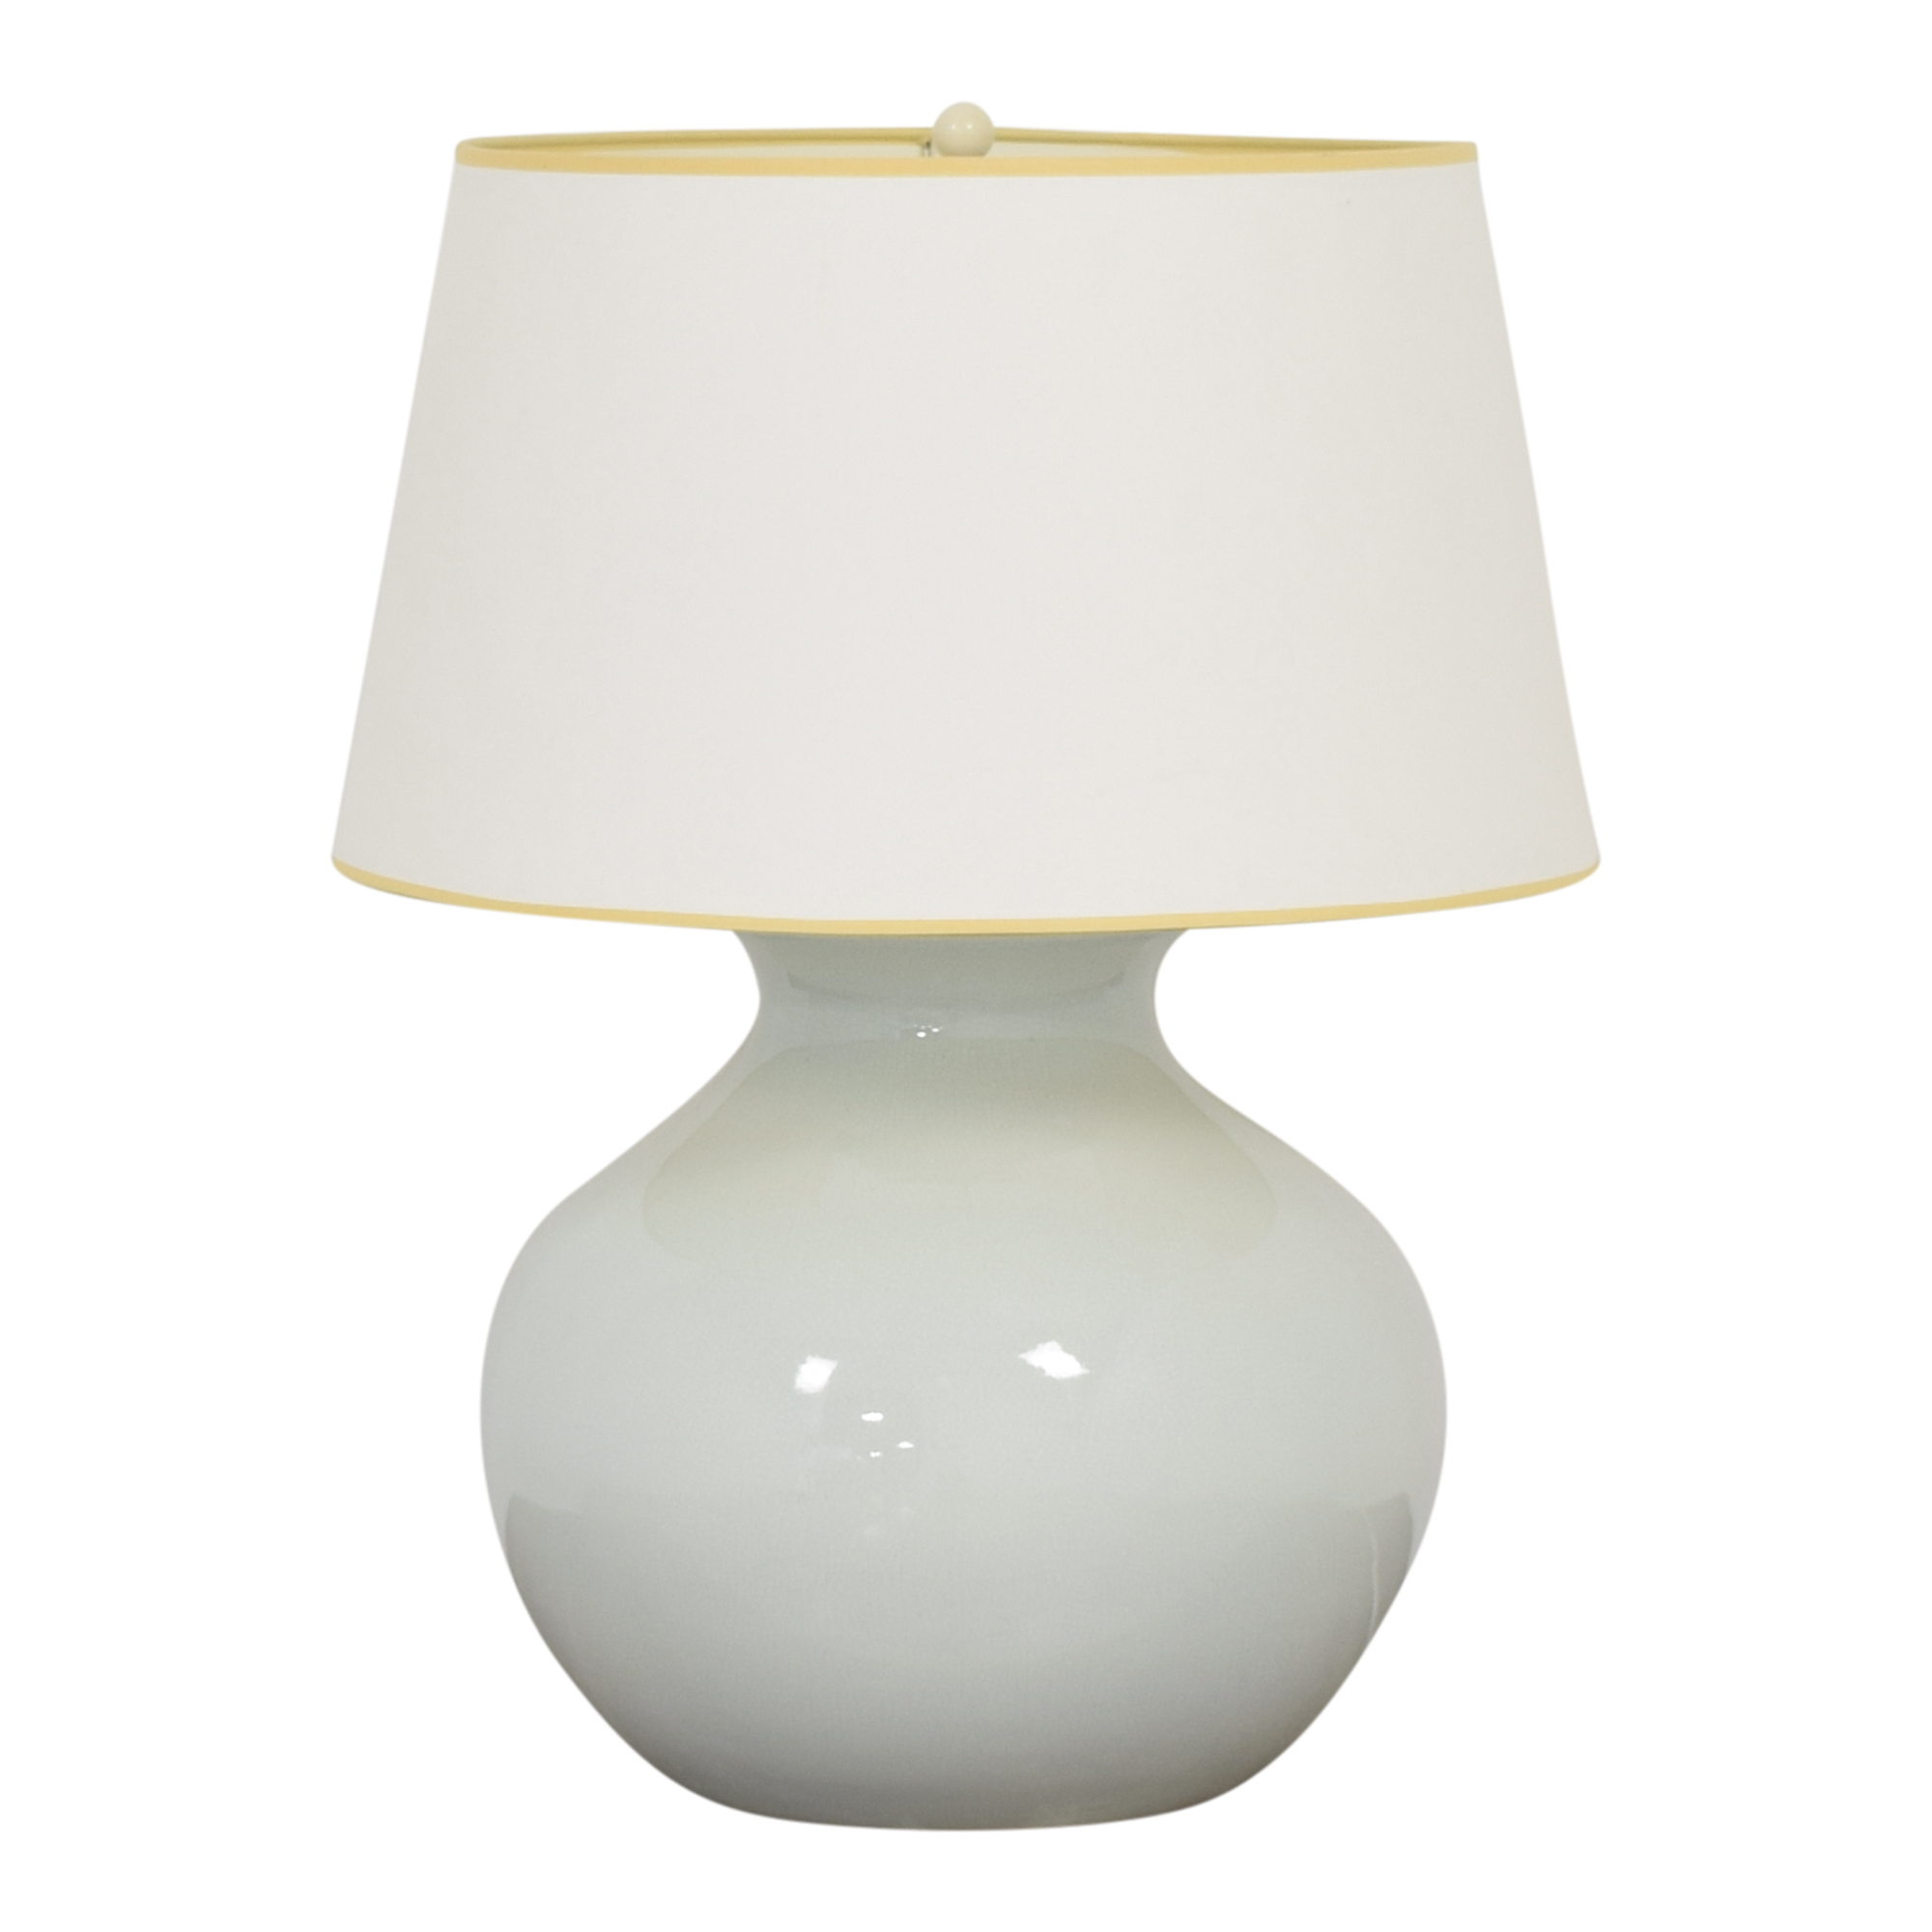 Ethan Allen Table Lamp / Lamps